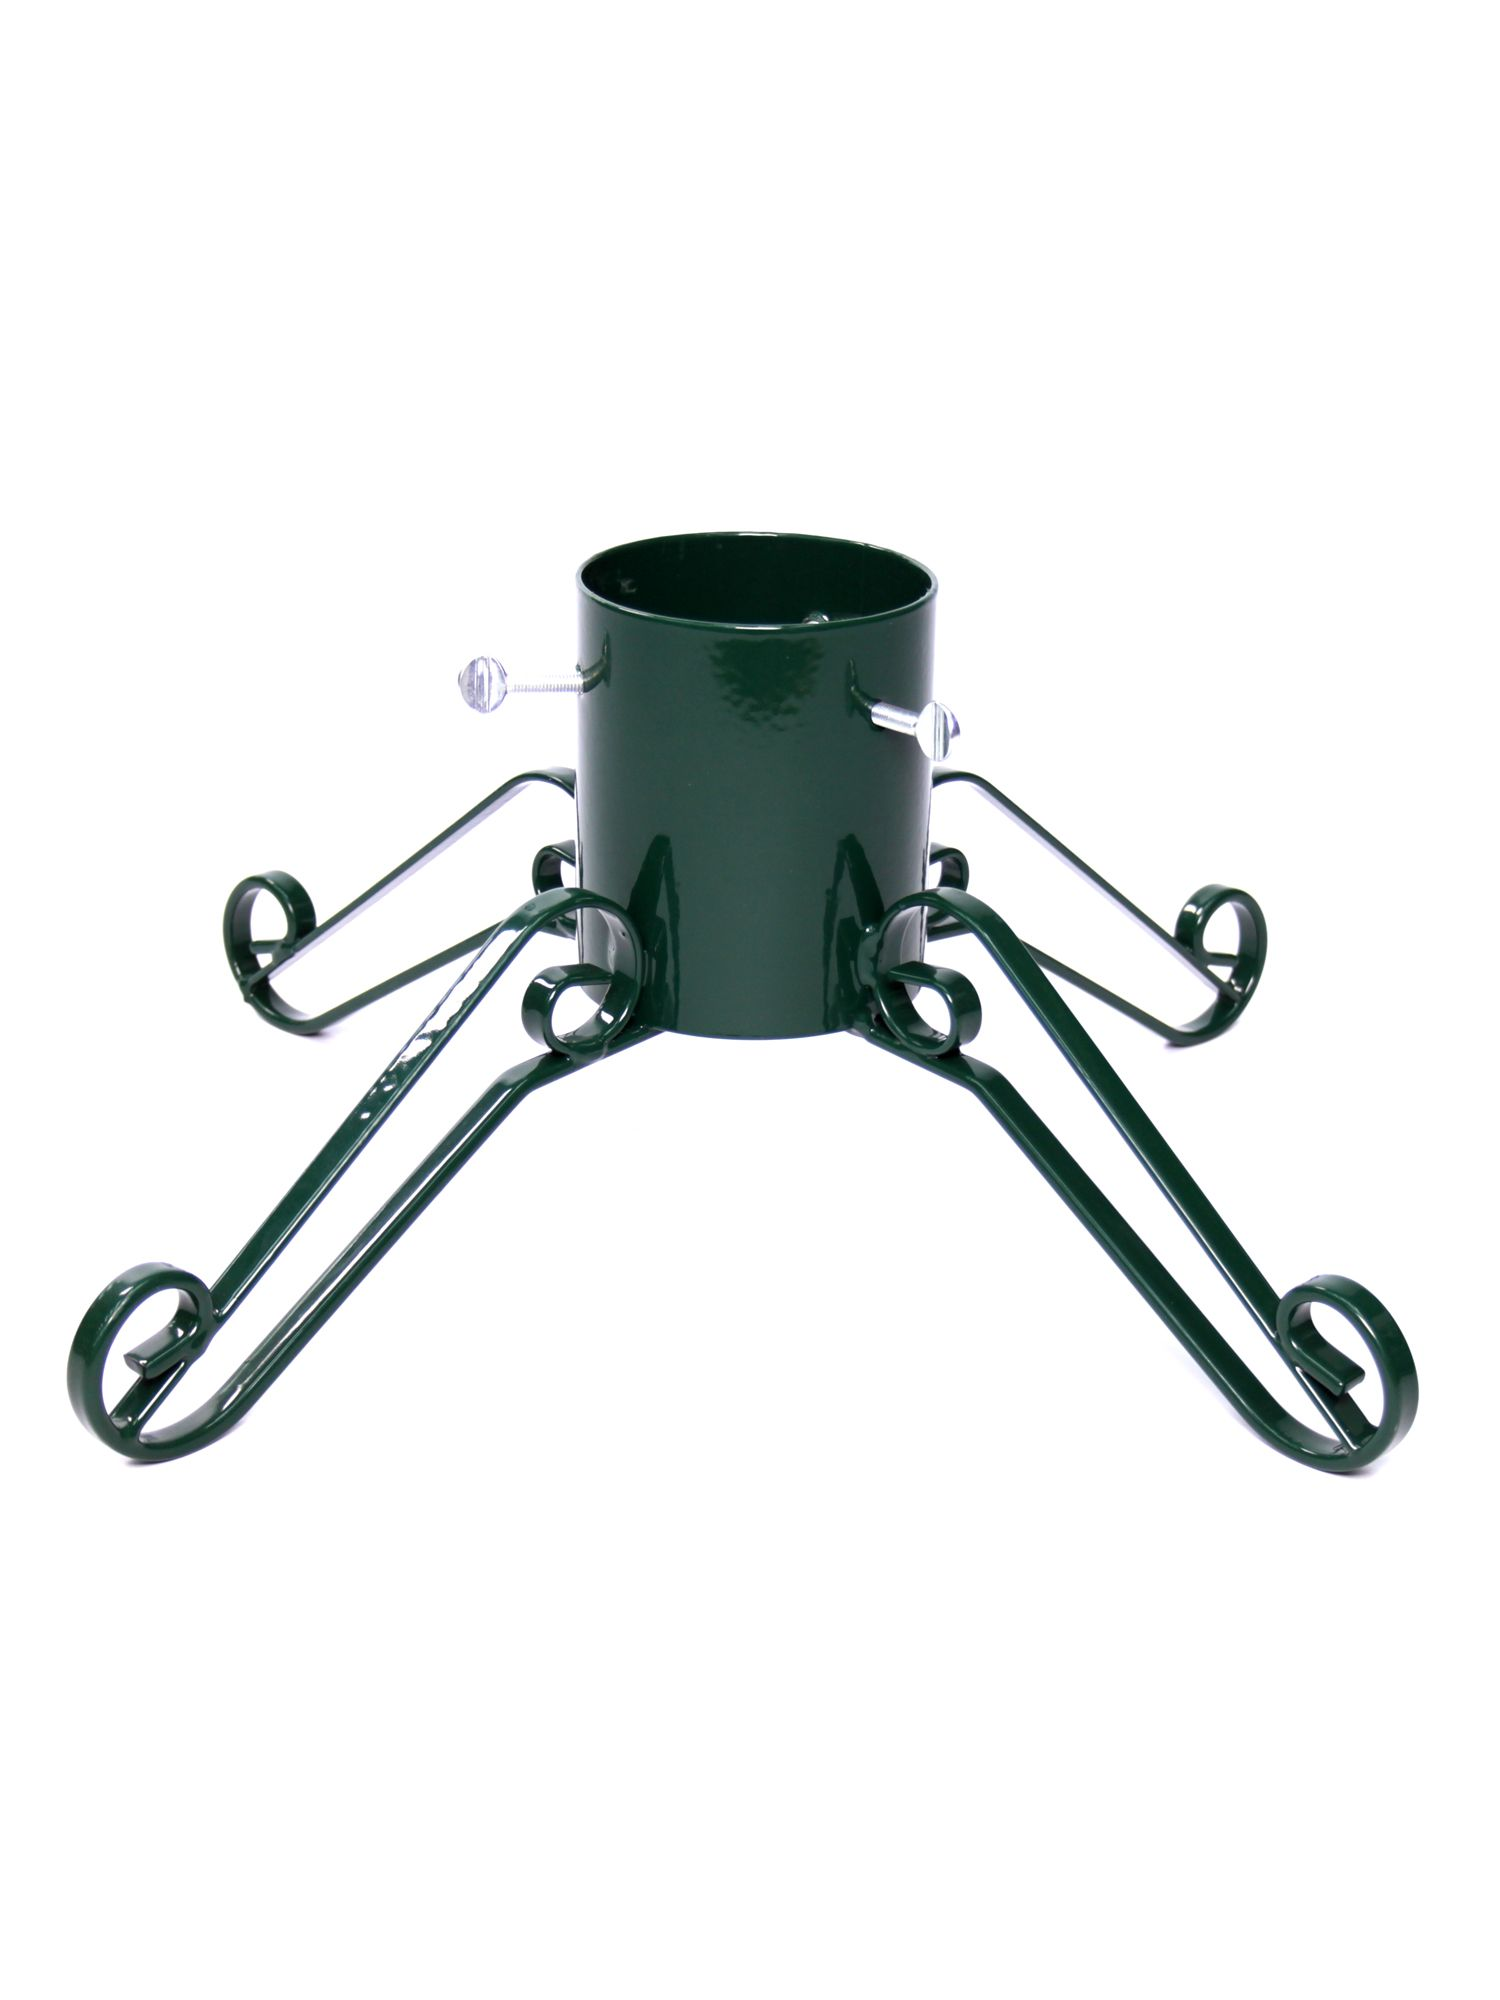 floric large christmas tree stand with water reservoir house of fraser - Christmas Tree Stand